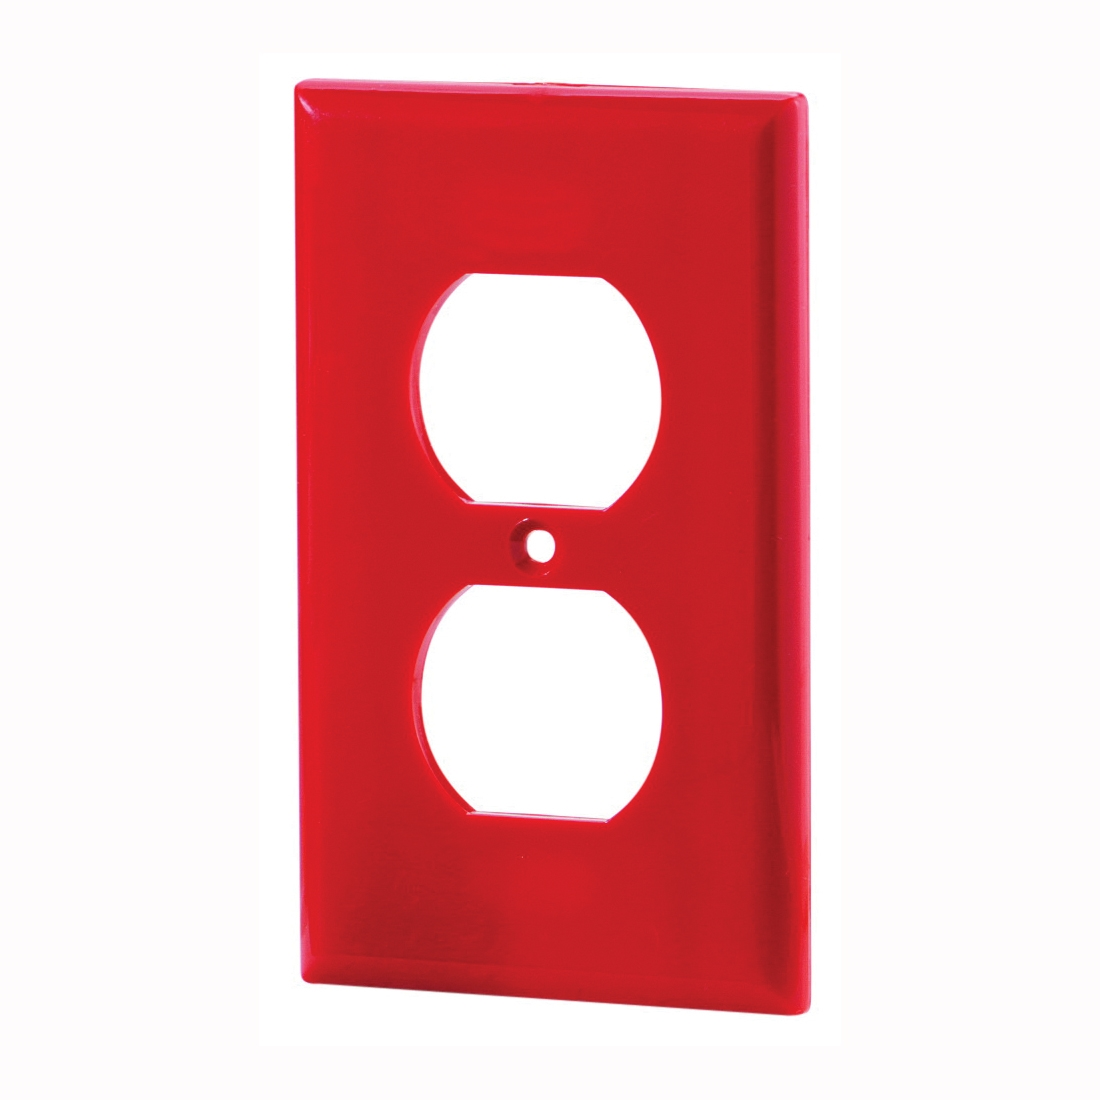 Picture of Eaton Wiring Devices 5132RD-BOX Duplex Receptacle Wallplate, 4-1/2 in L, 2-3/4 in W, 1-Gang, Nylon, Red